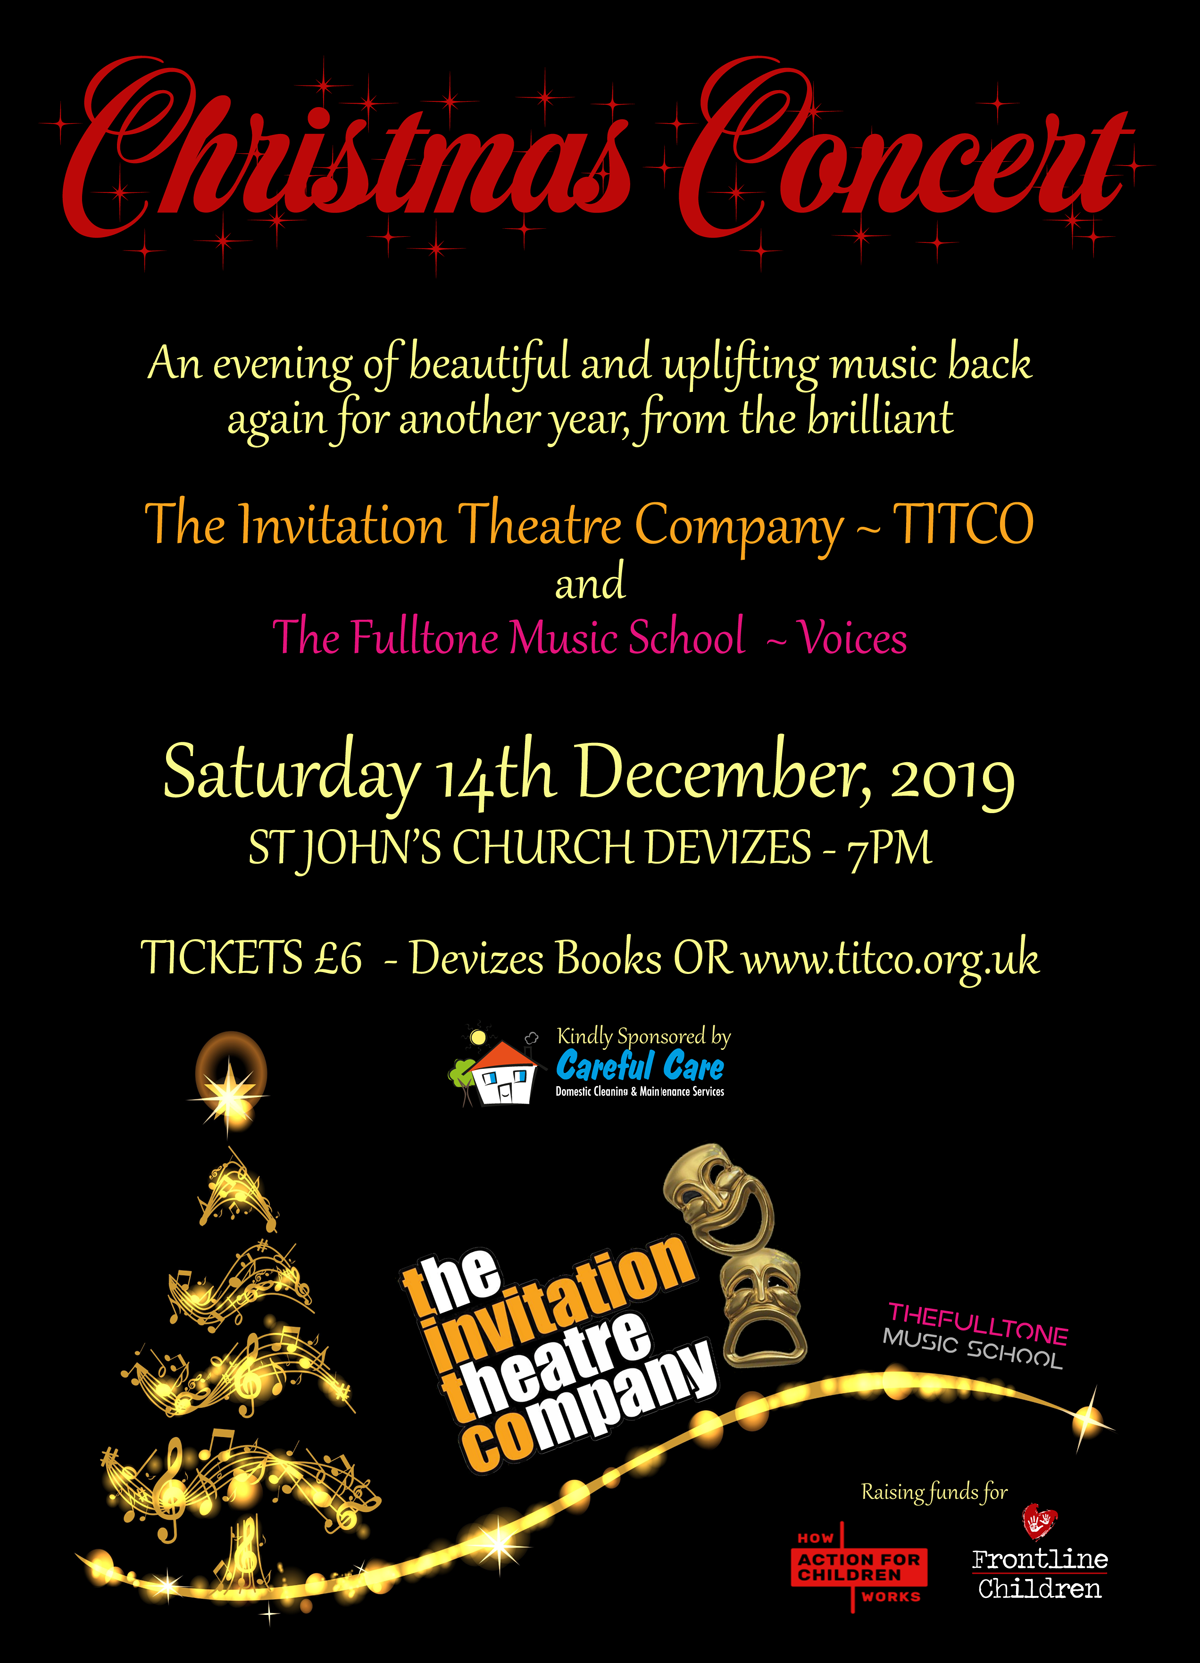 'Christmas Concert 2019' poster for TITCO